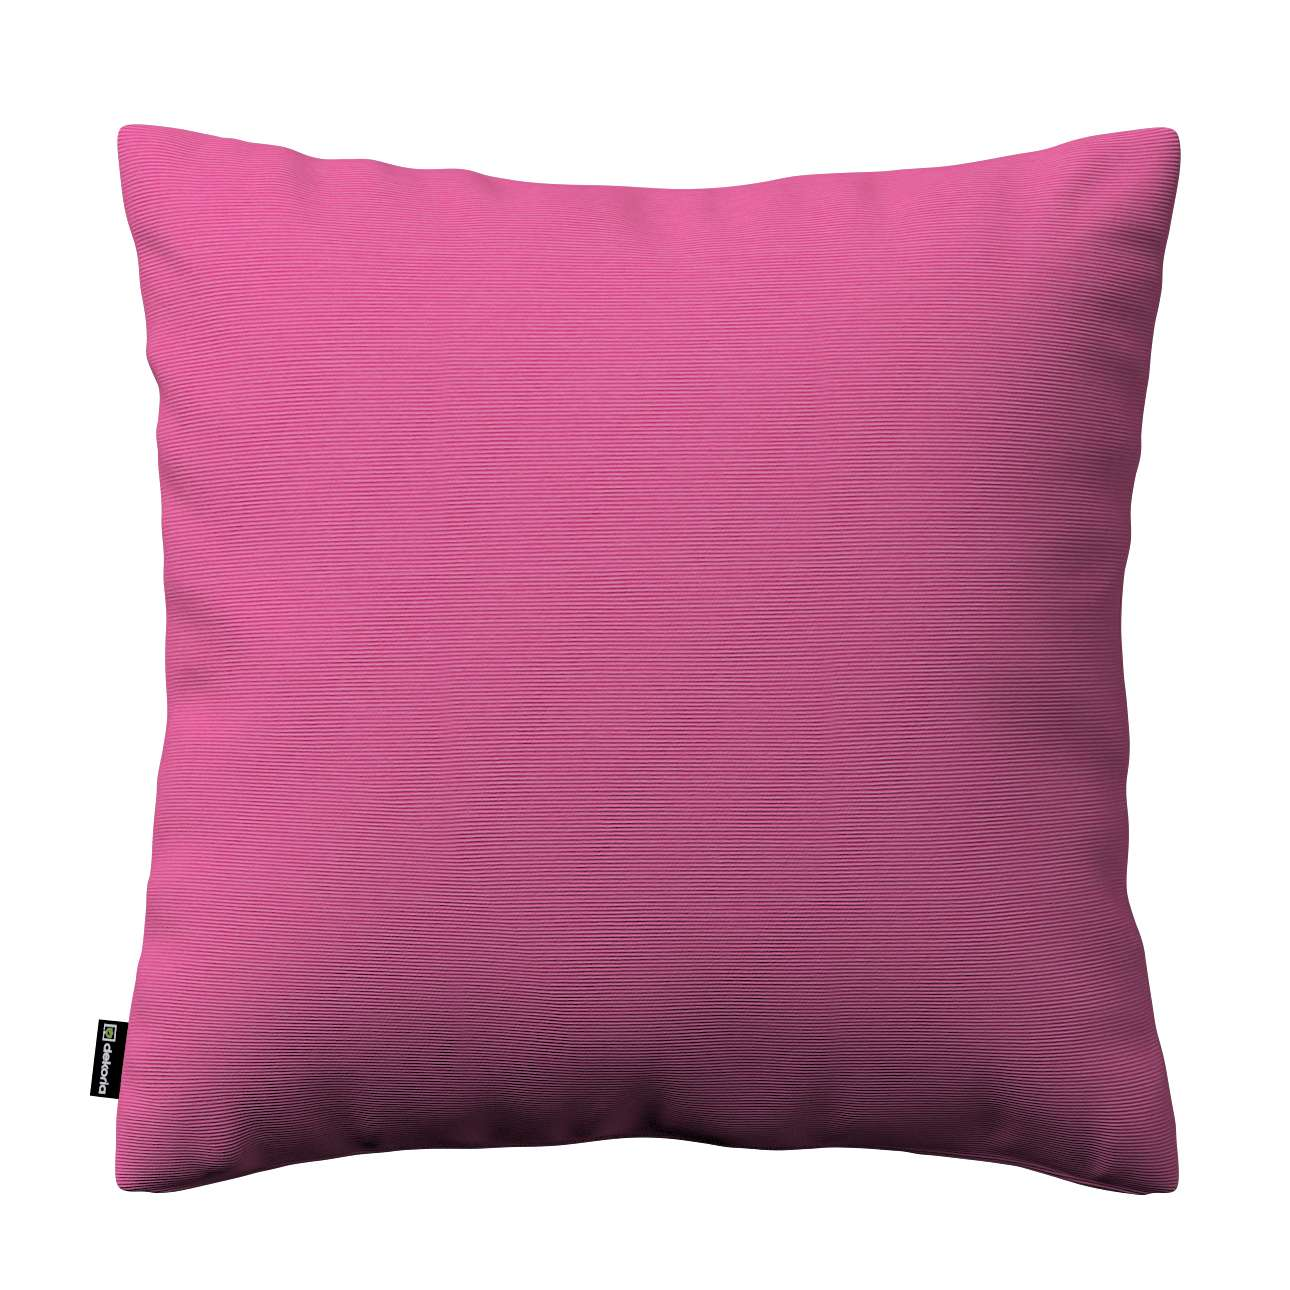 Kinga cushion cover 43 x 43 cm (17 x 17 inch) in collection Jupiter, fabric: 127-24